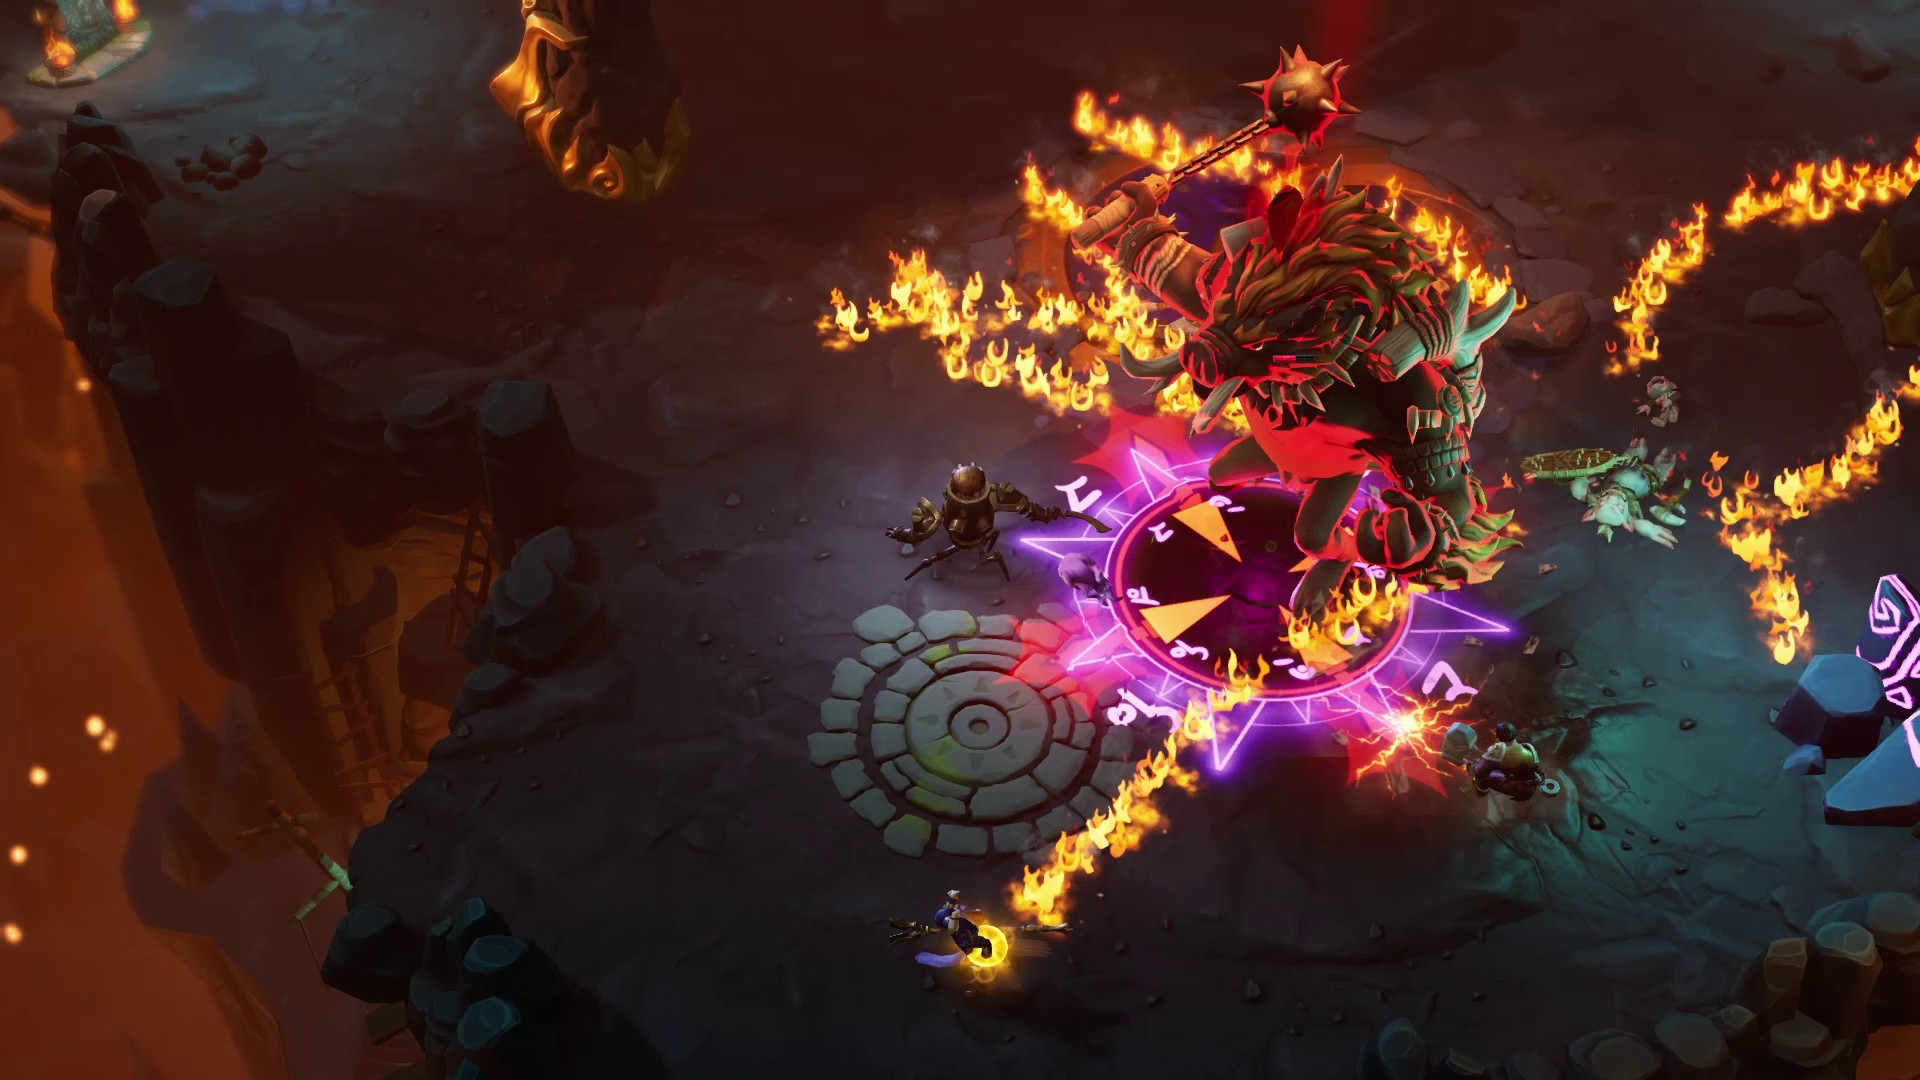 Find the best gaming PC for Torchlight III